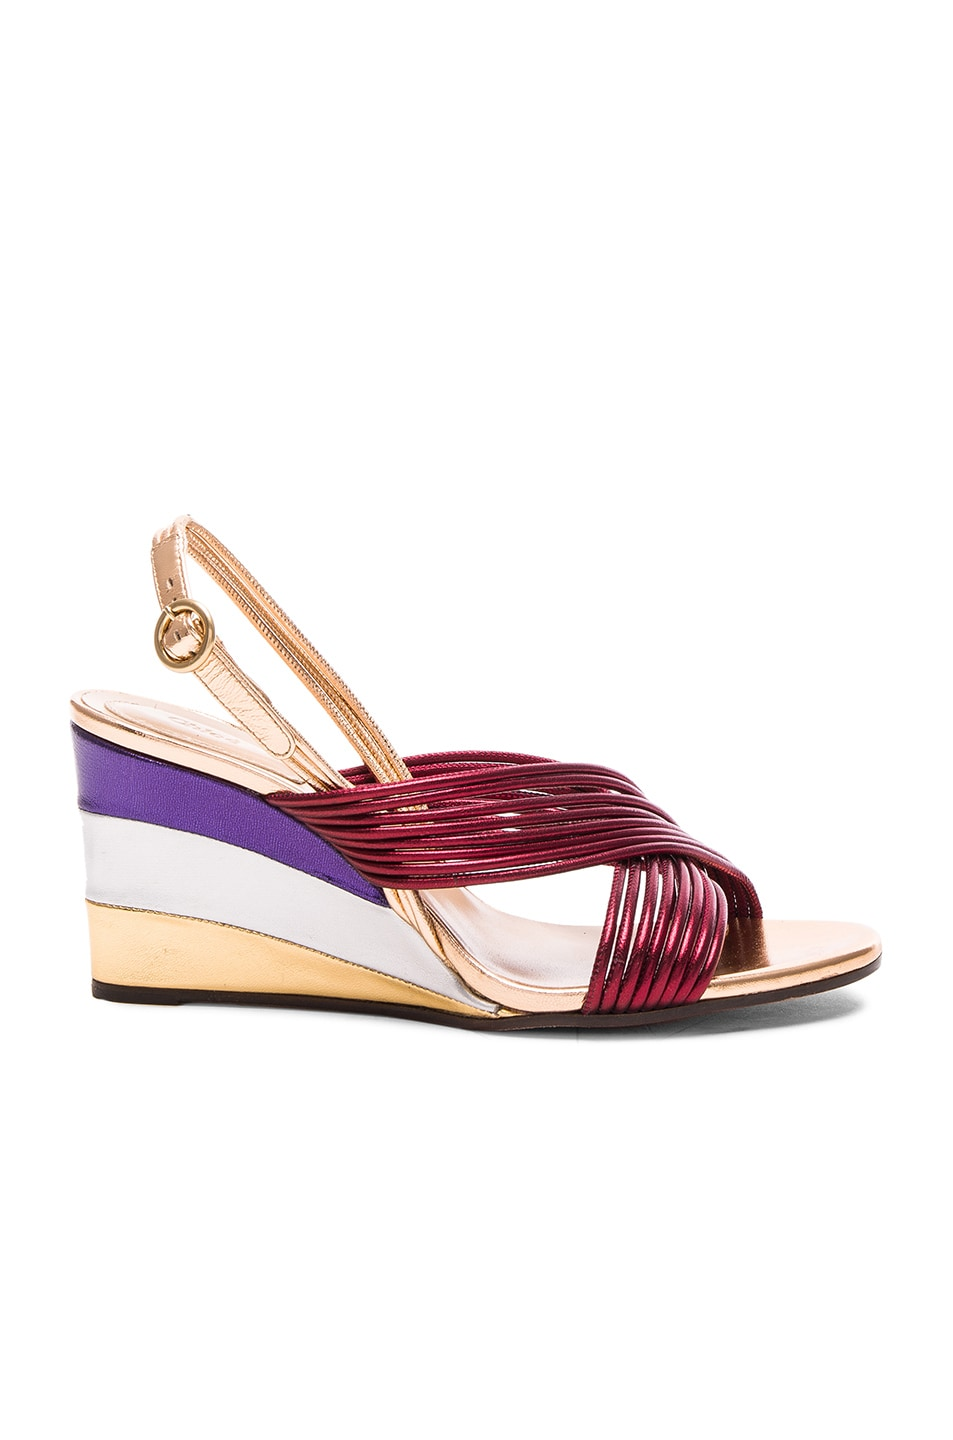 b6ff7ecd138fe Image 1 of Chloe Leather Rainbow Sandals in Bordeaux Metallic